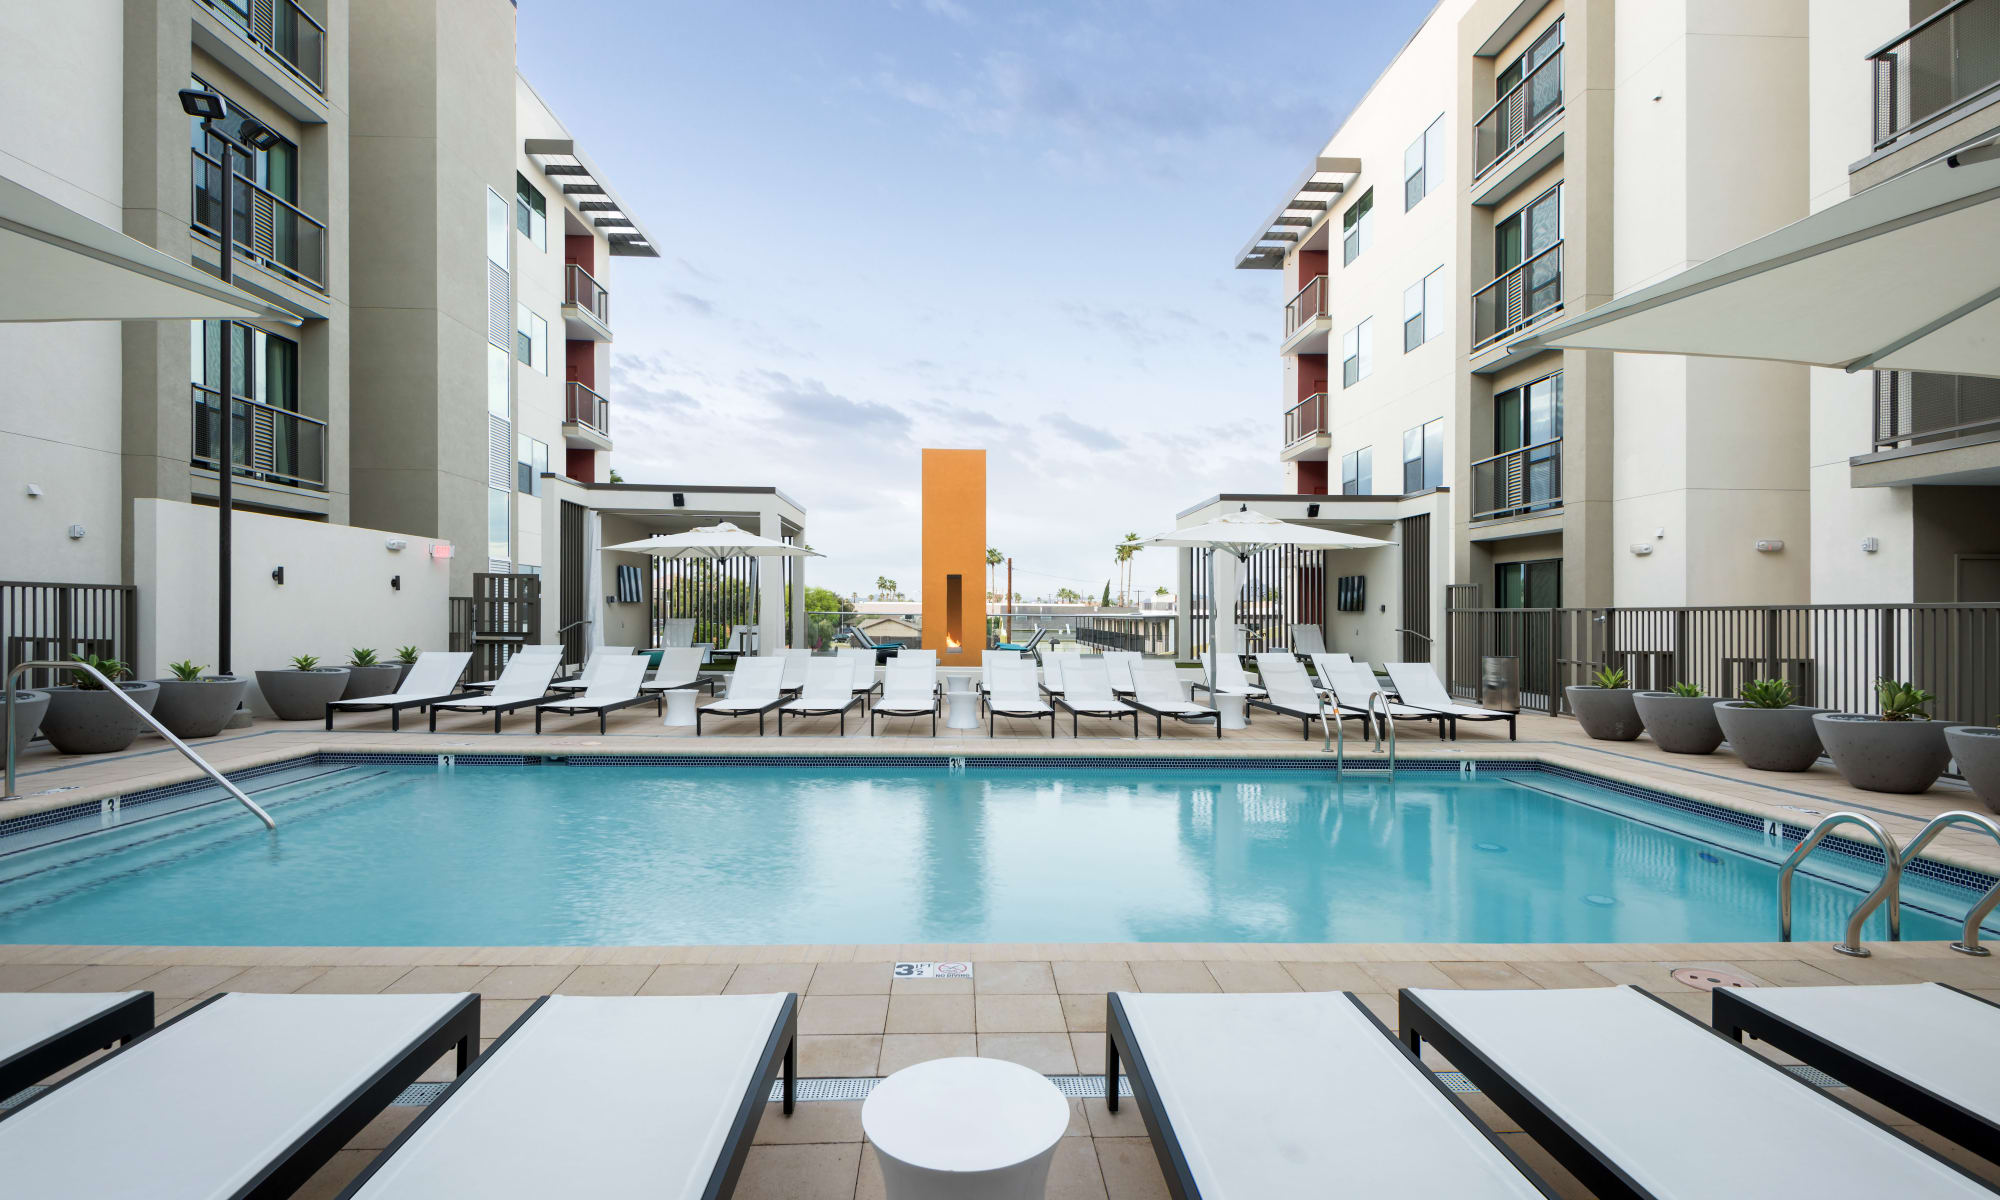 Apartments in Phoenix, Arizona at Capital Place